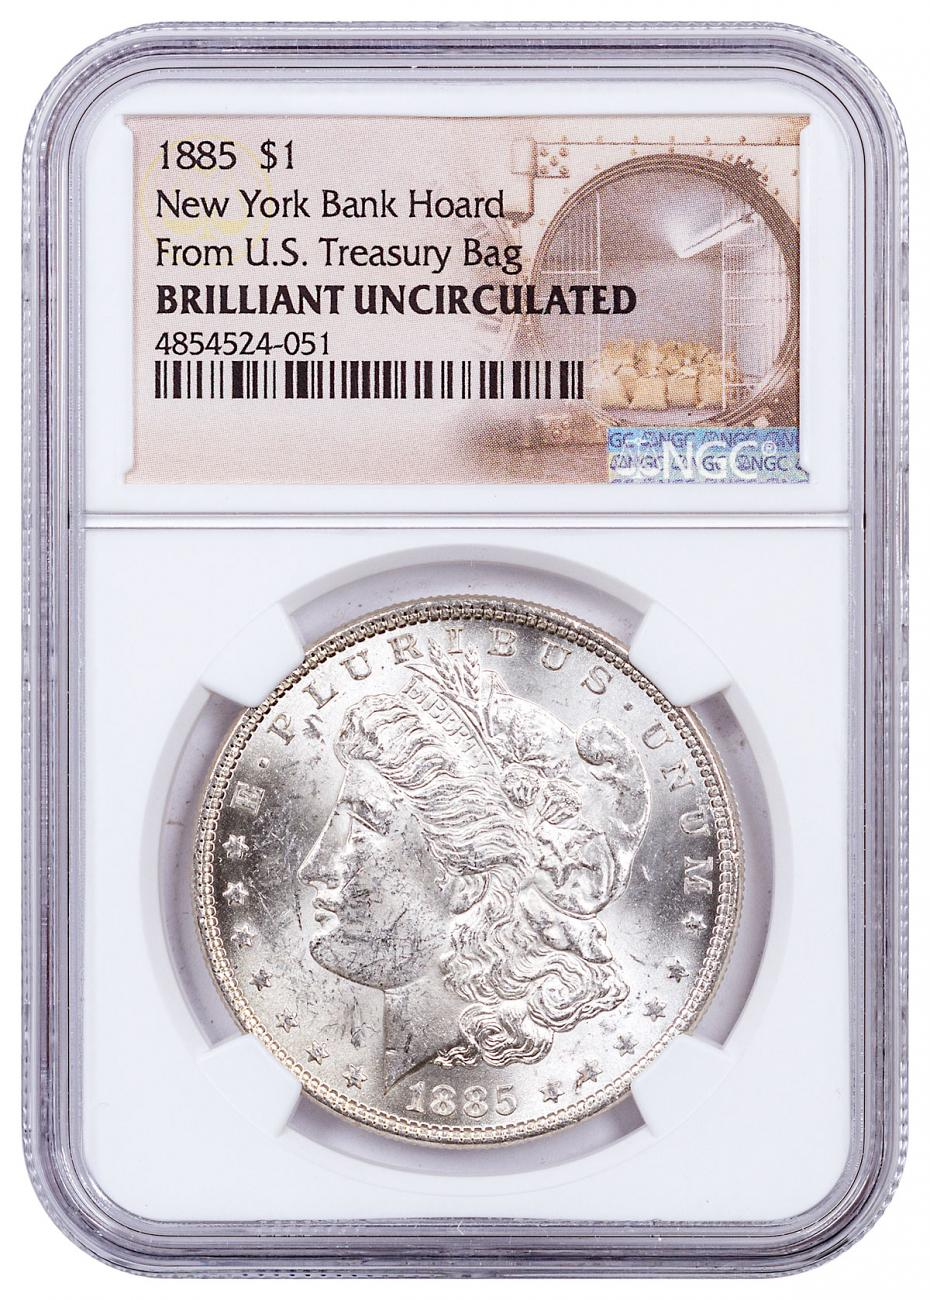 1885 Morgan Silver Dollar From the New York Bank Hoard NGC BU